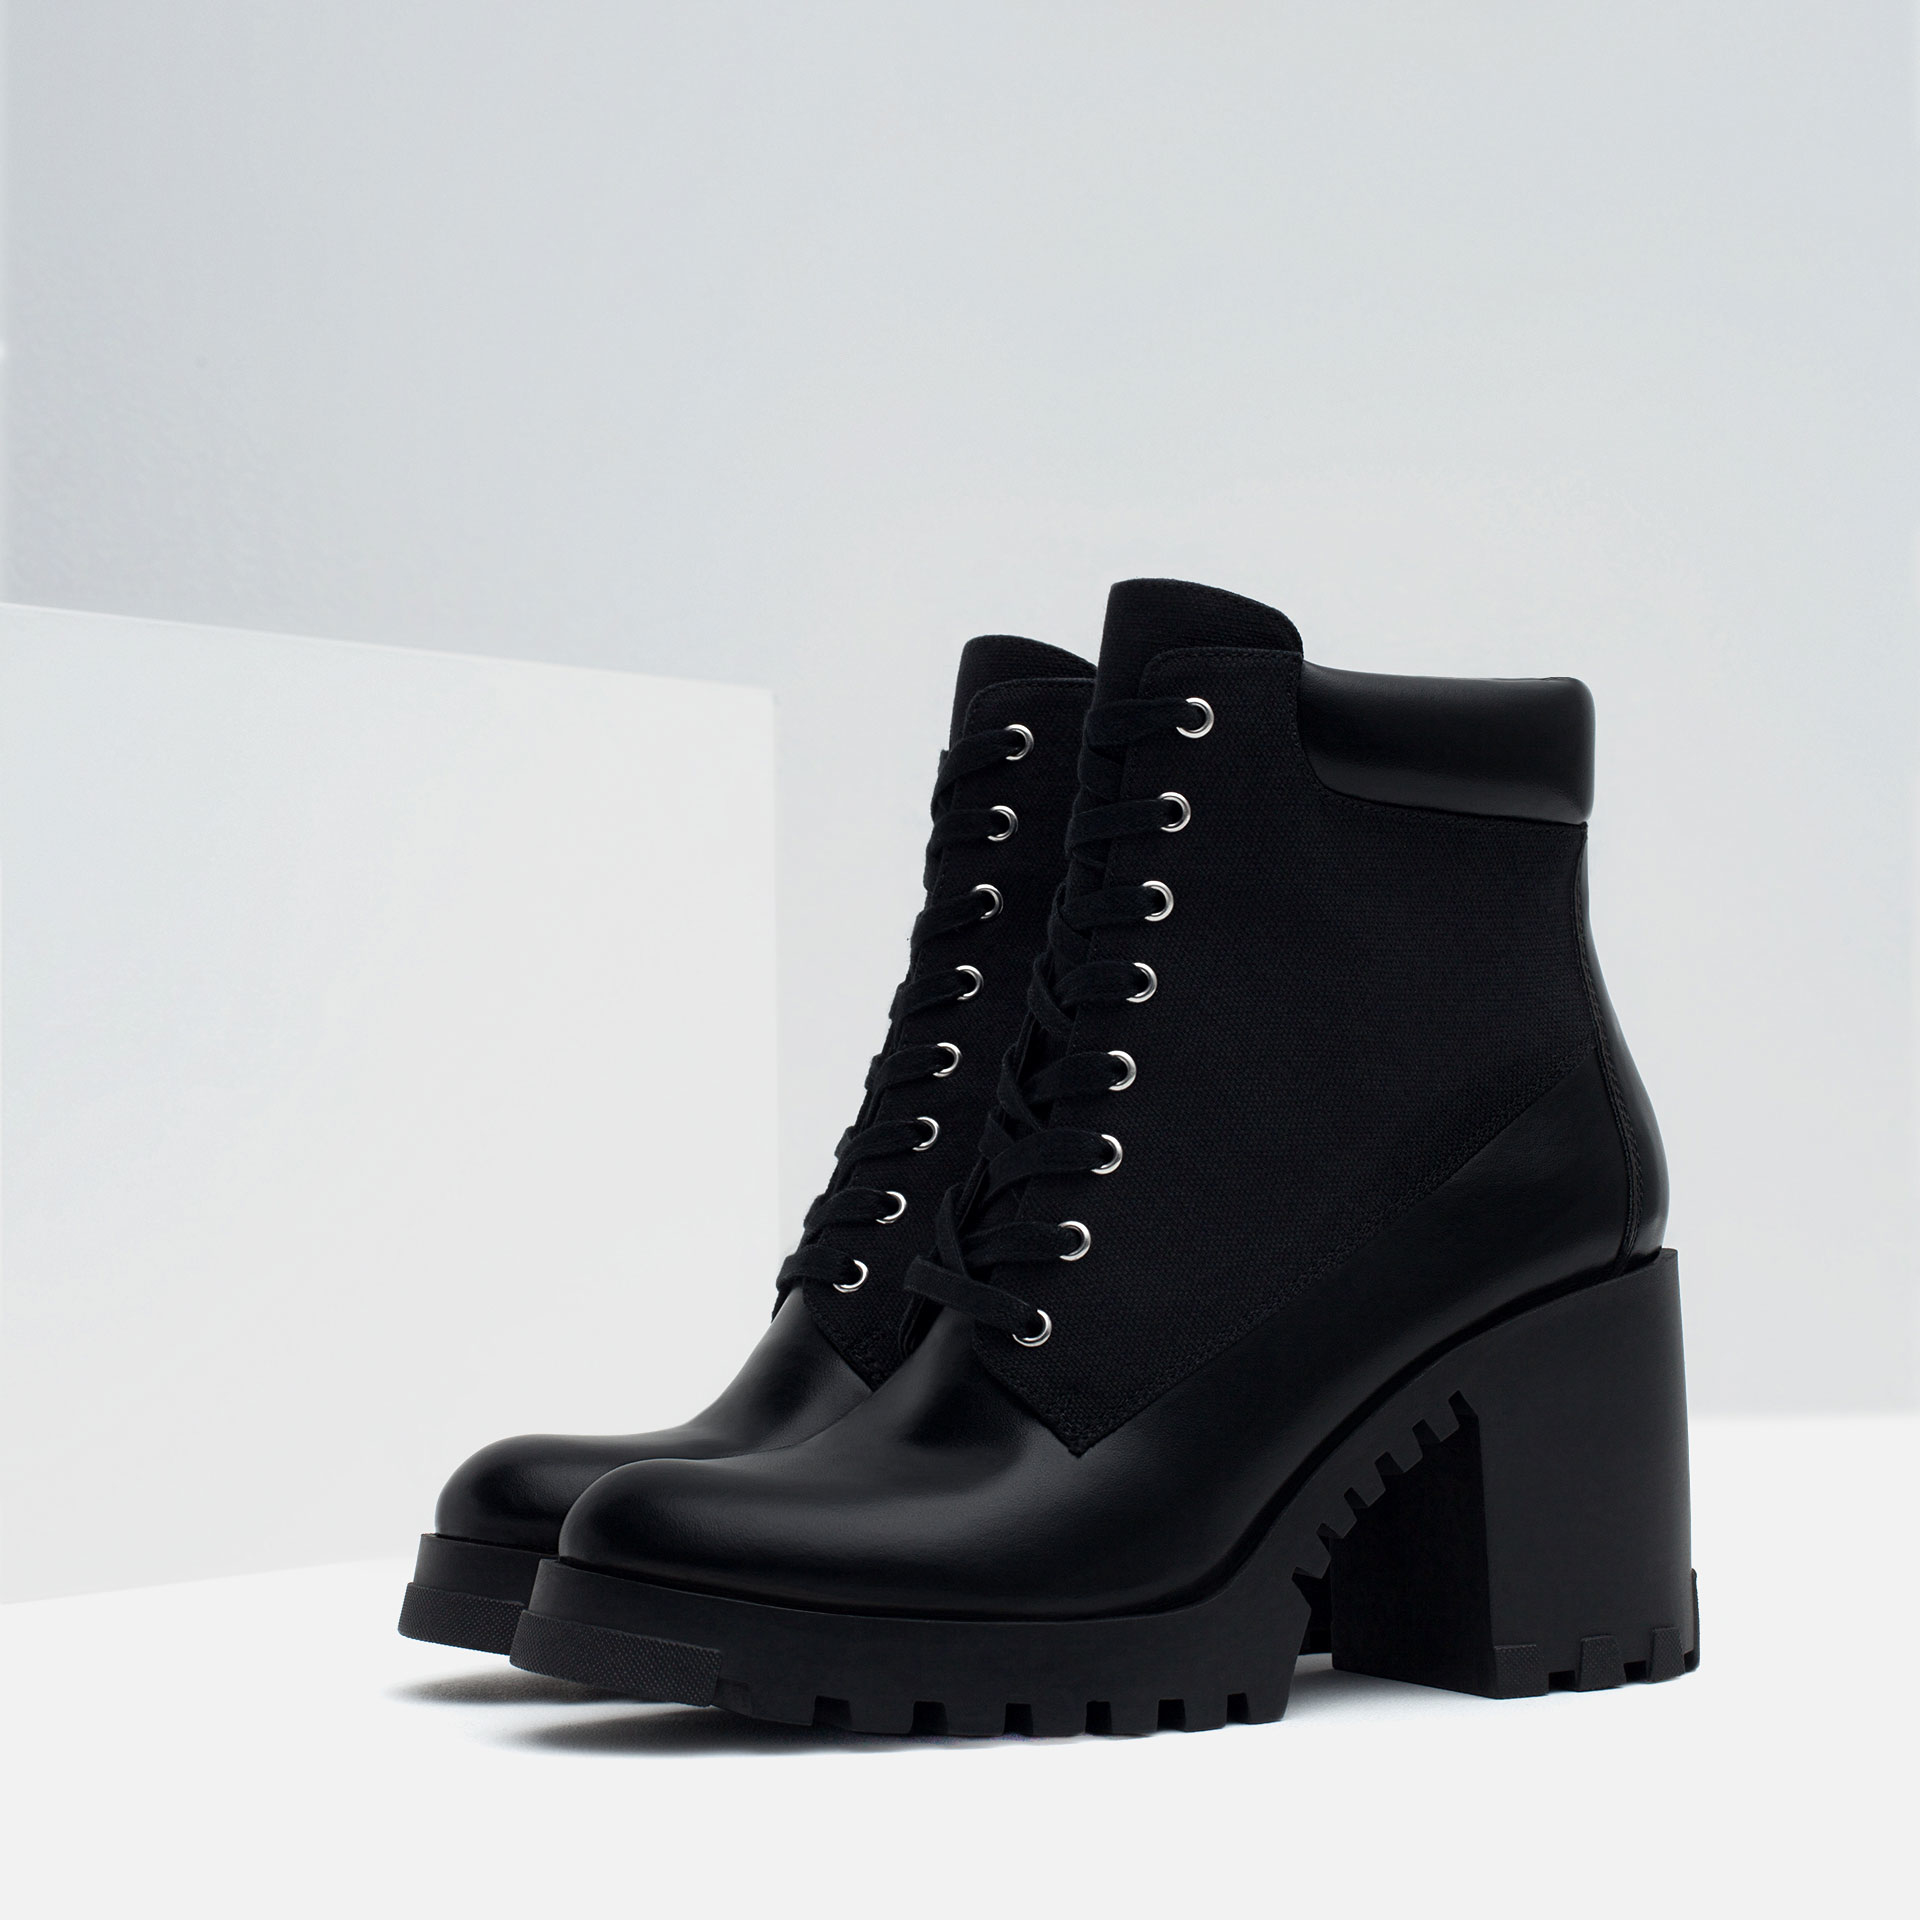 Zara Lace-up High Heel Ankle Boots in Black | Lyst